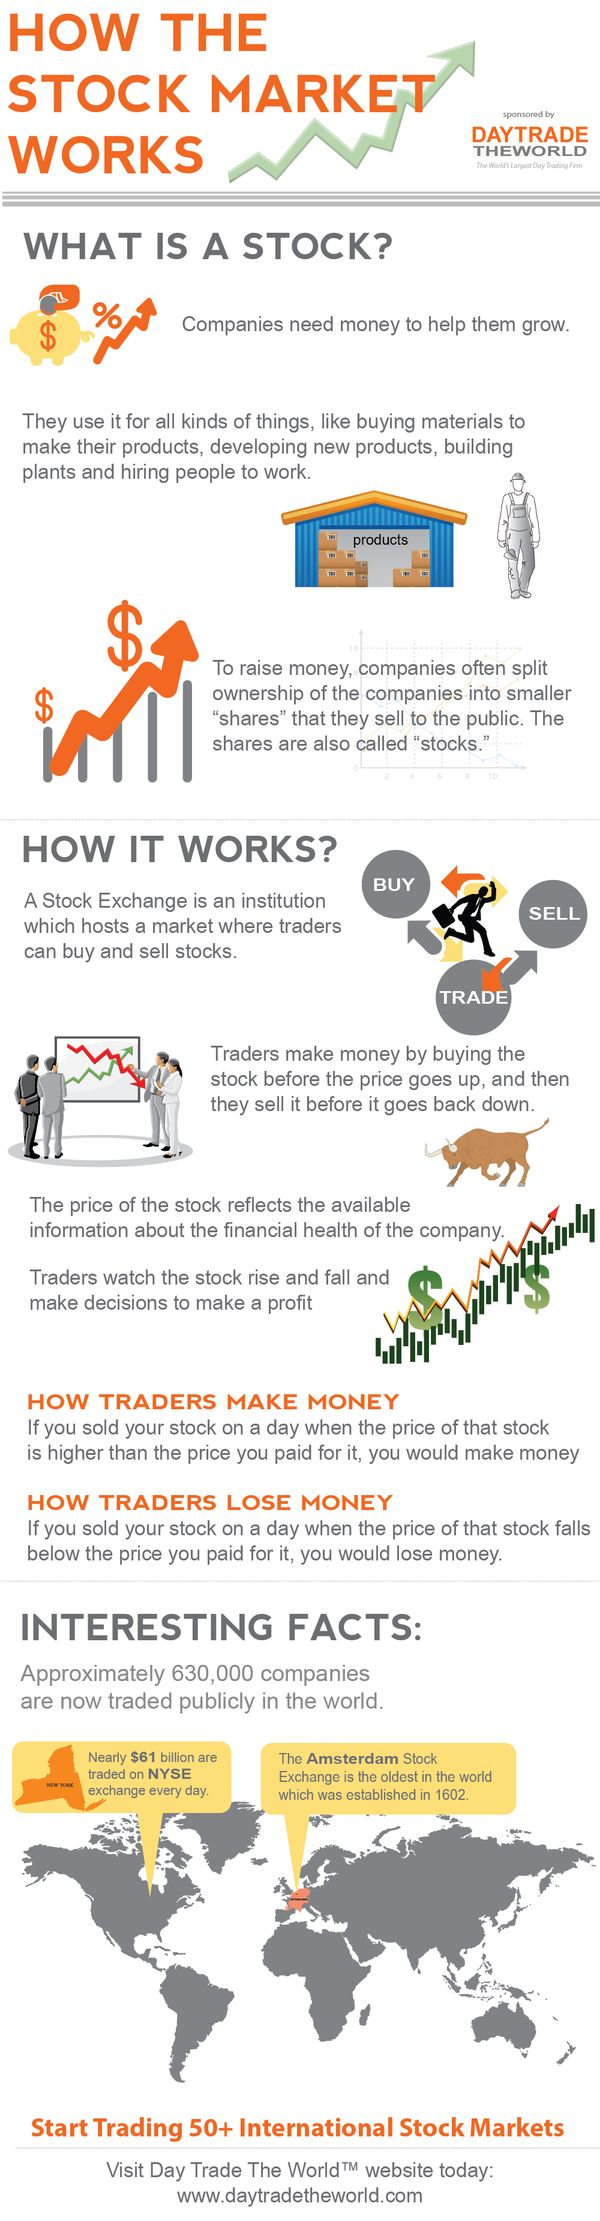 how-the-stock-market-works-infographic http://www.tradingprofits4u.com/